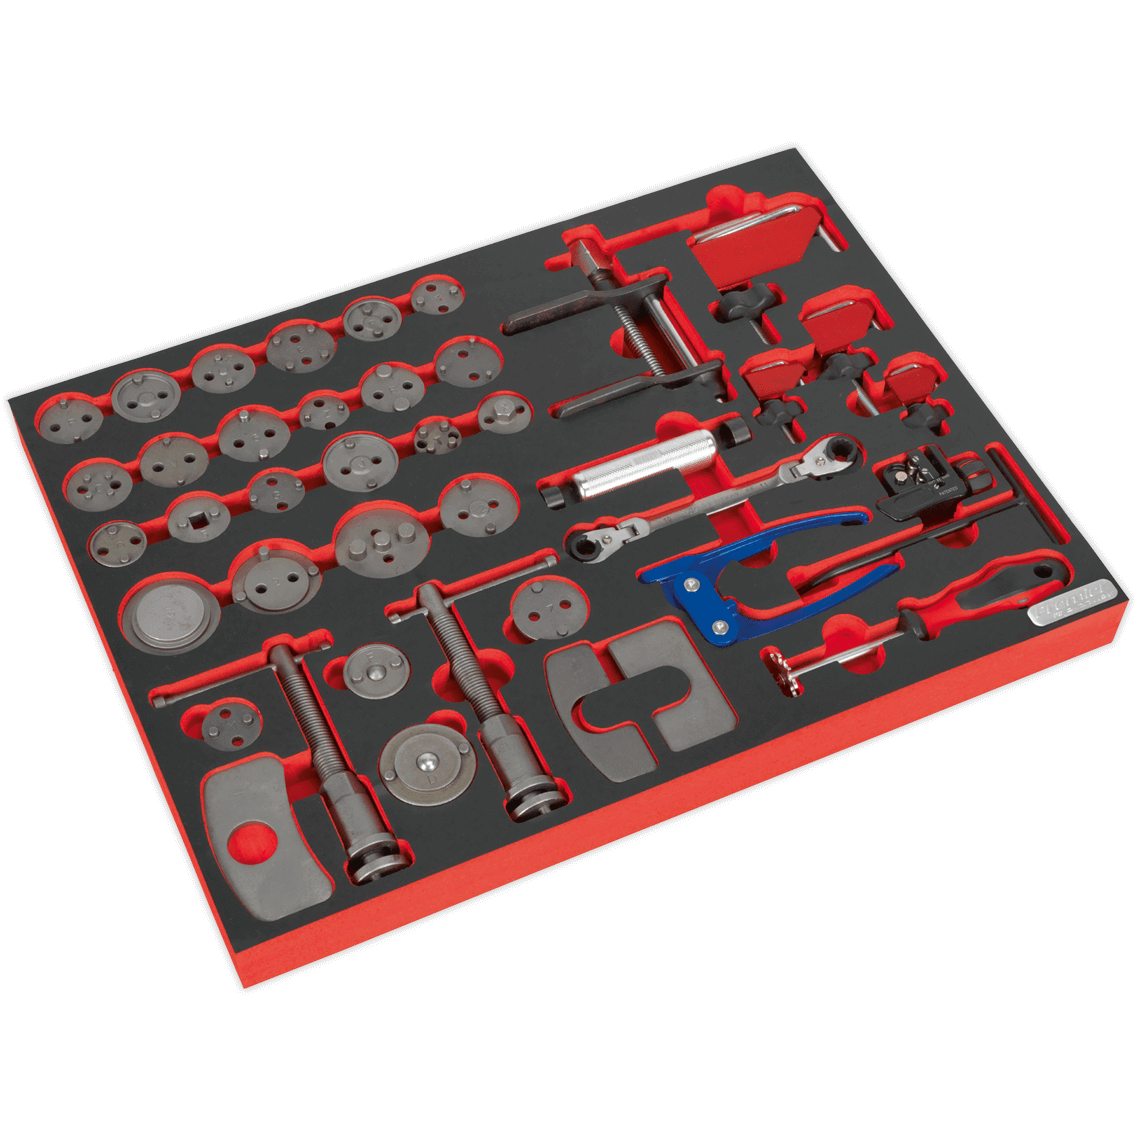 Image of Sealey 42 Piece Brake Service Modeule Tool Kit for AP24 Tool Chests